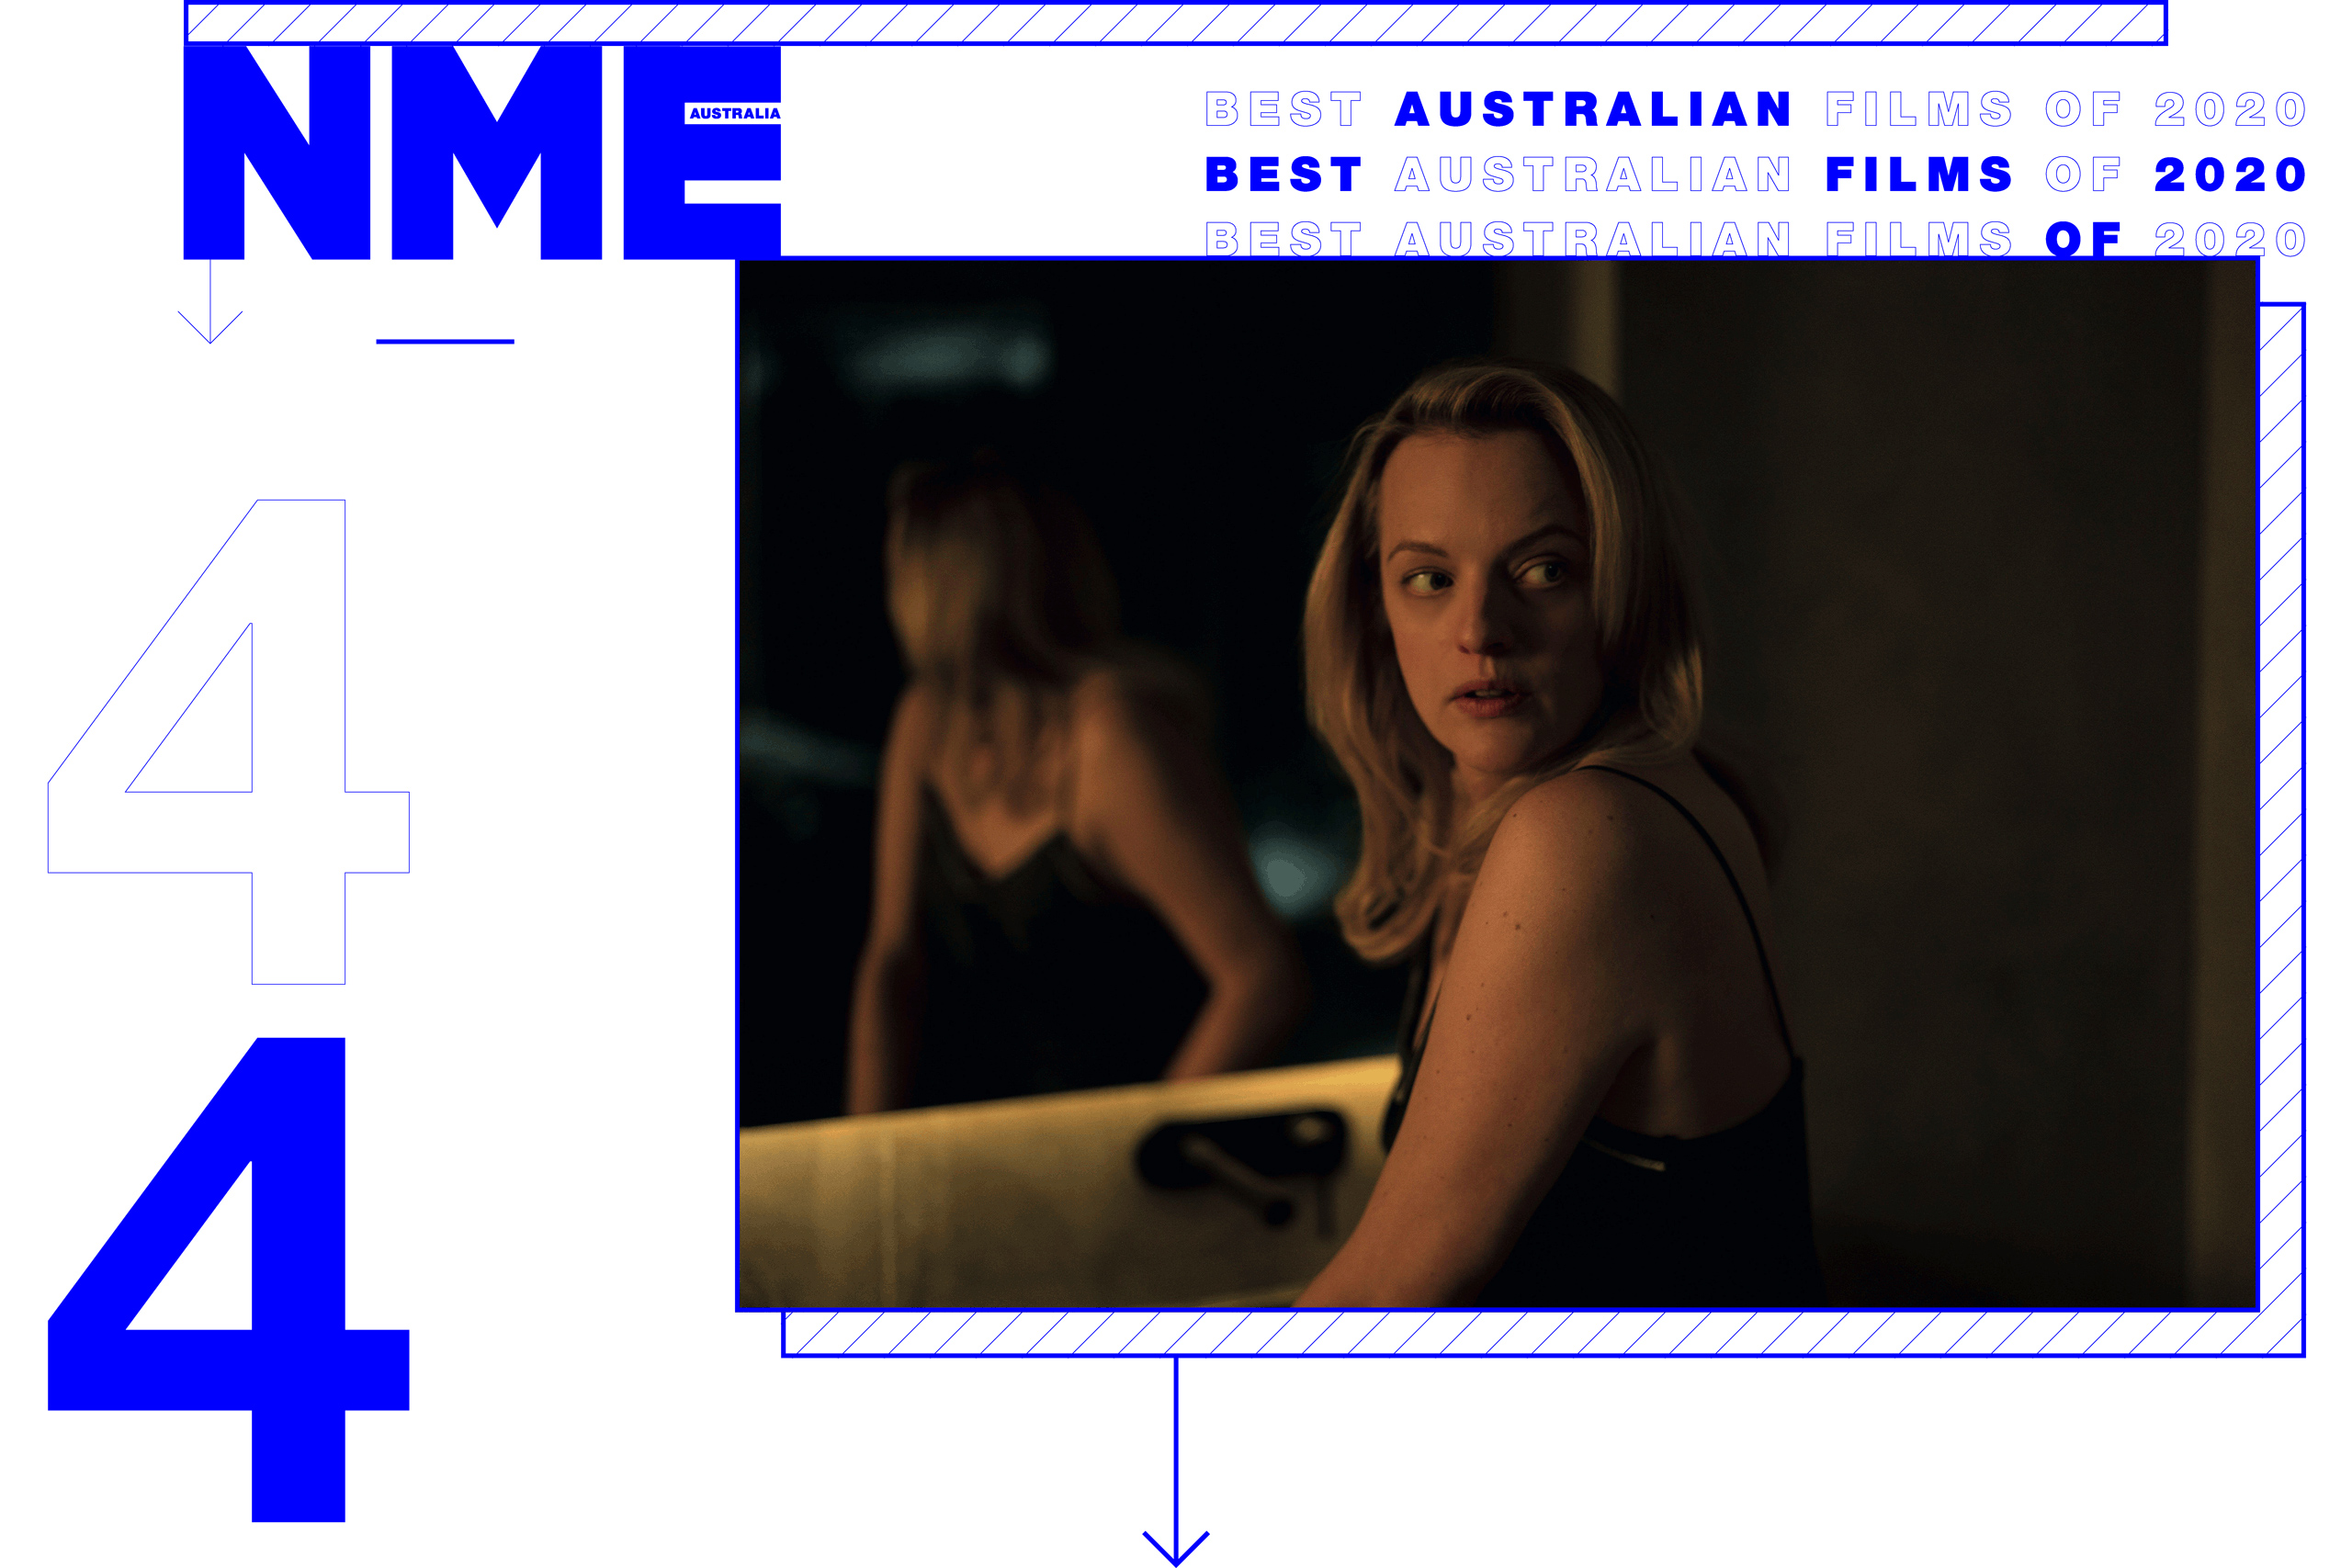 NME Australia Films Of The Year, The Invisible Man